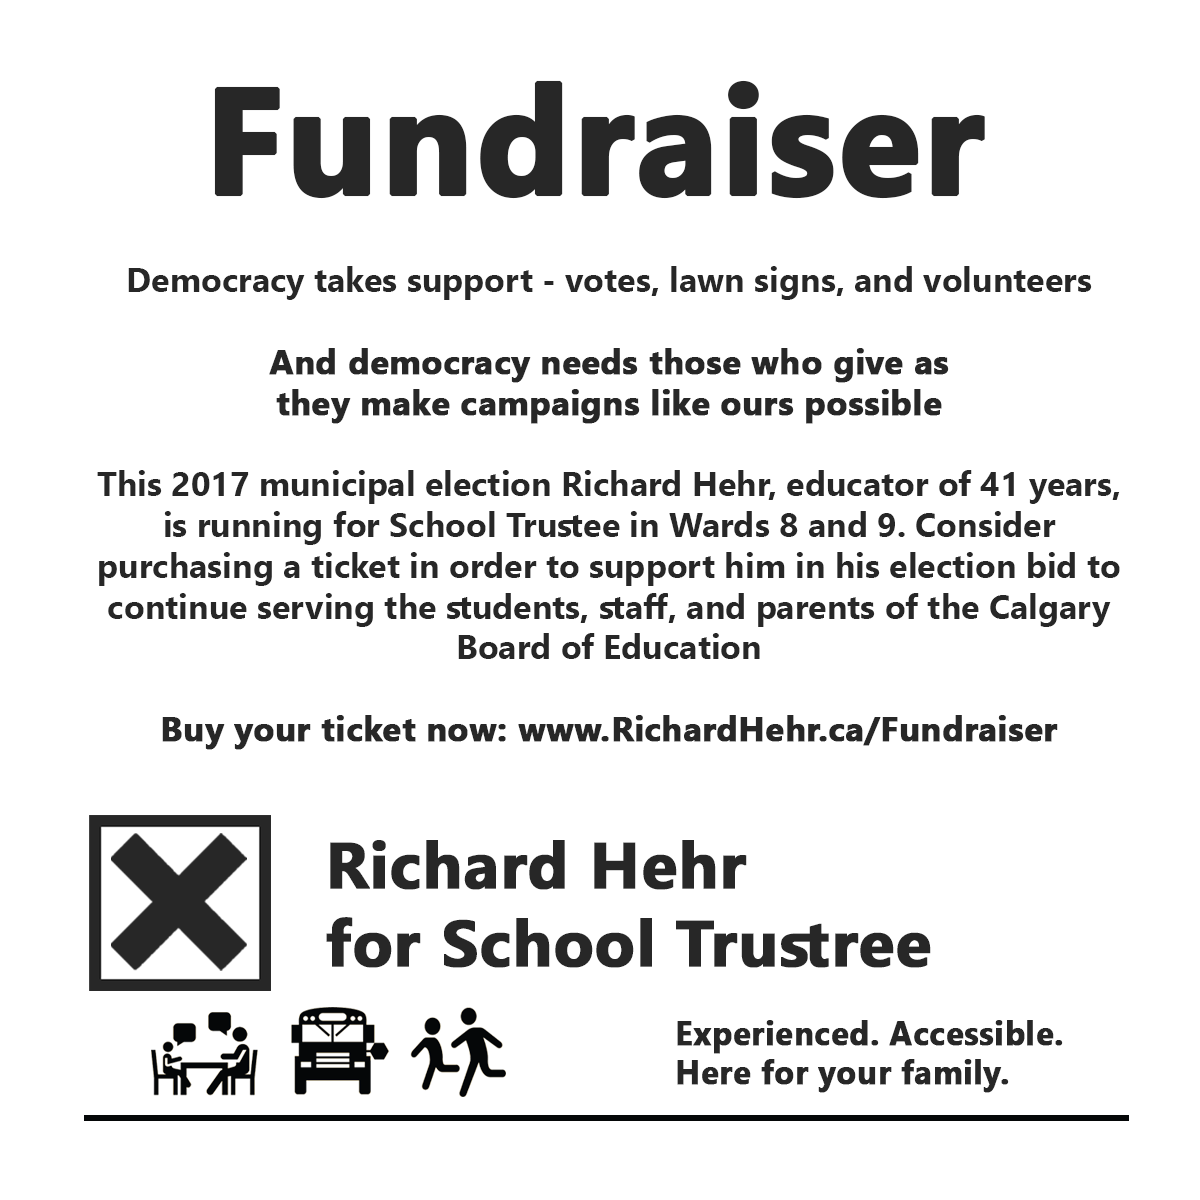 fundraiser_graphic.png